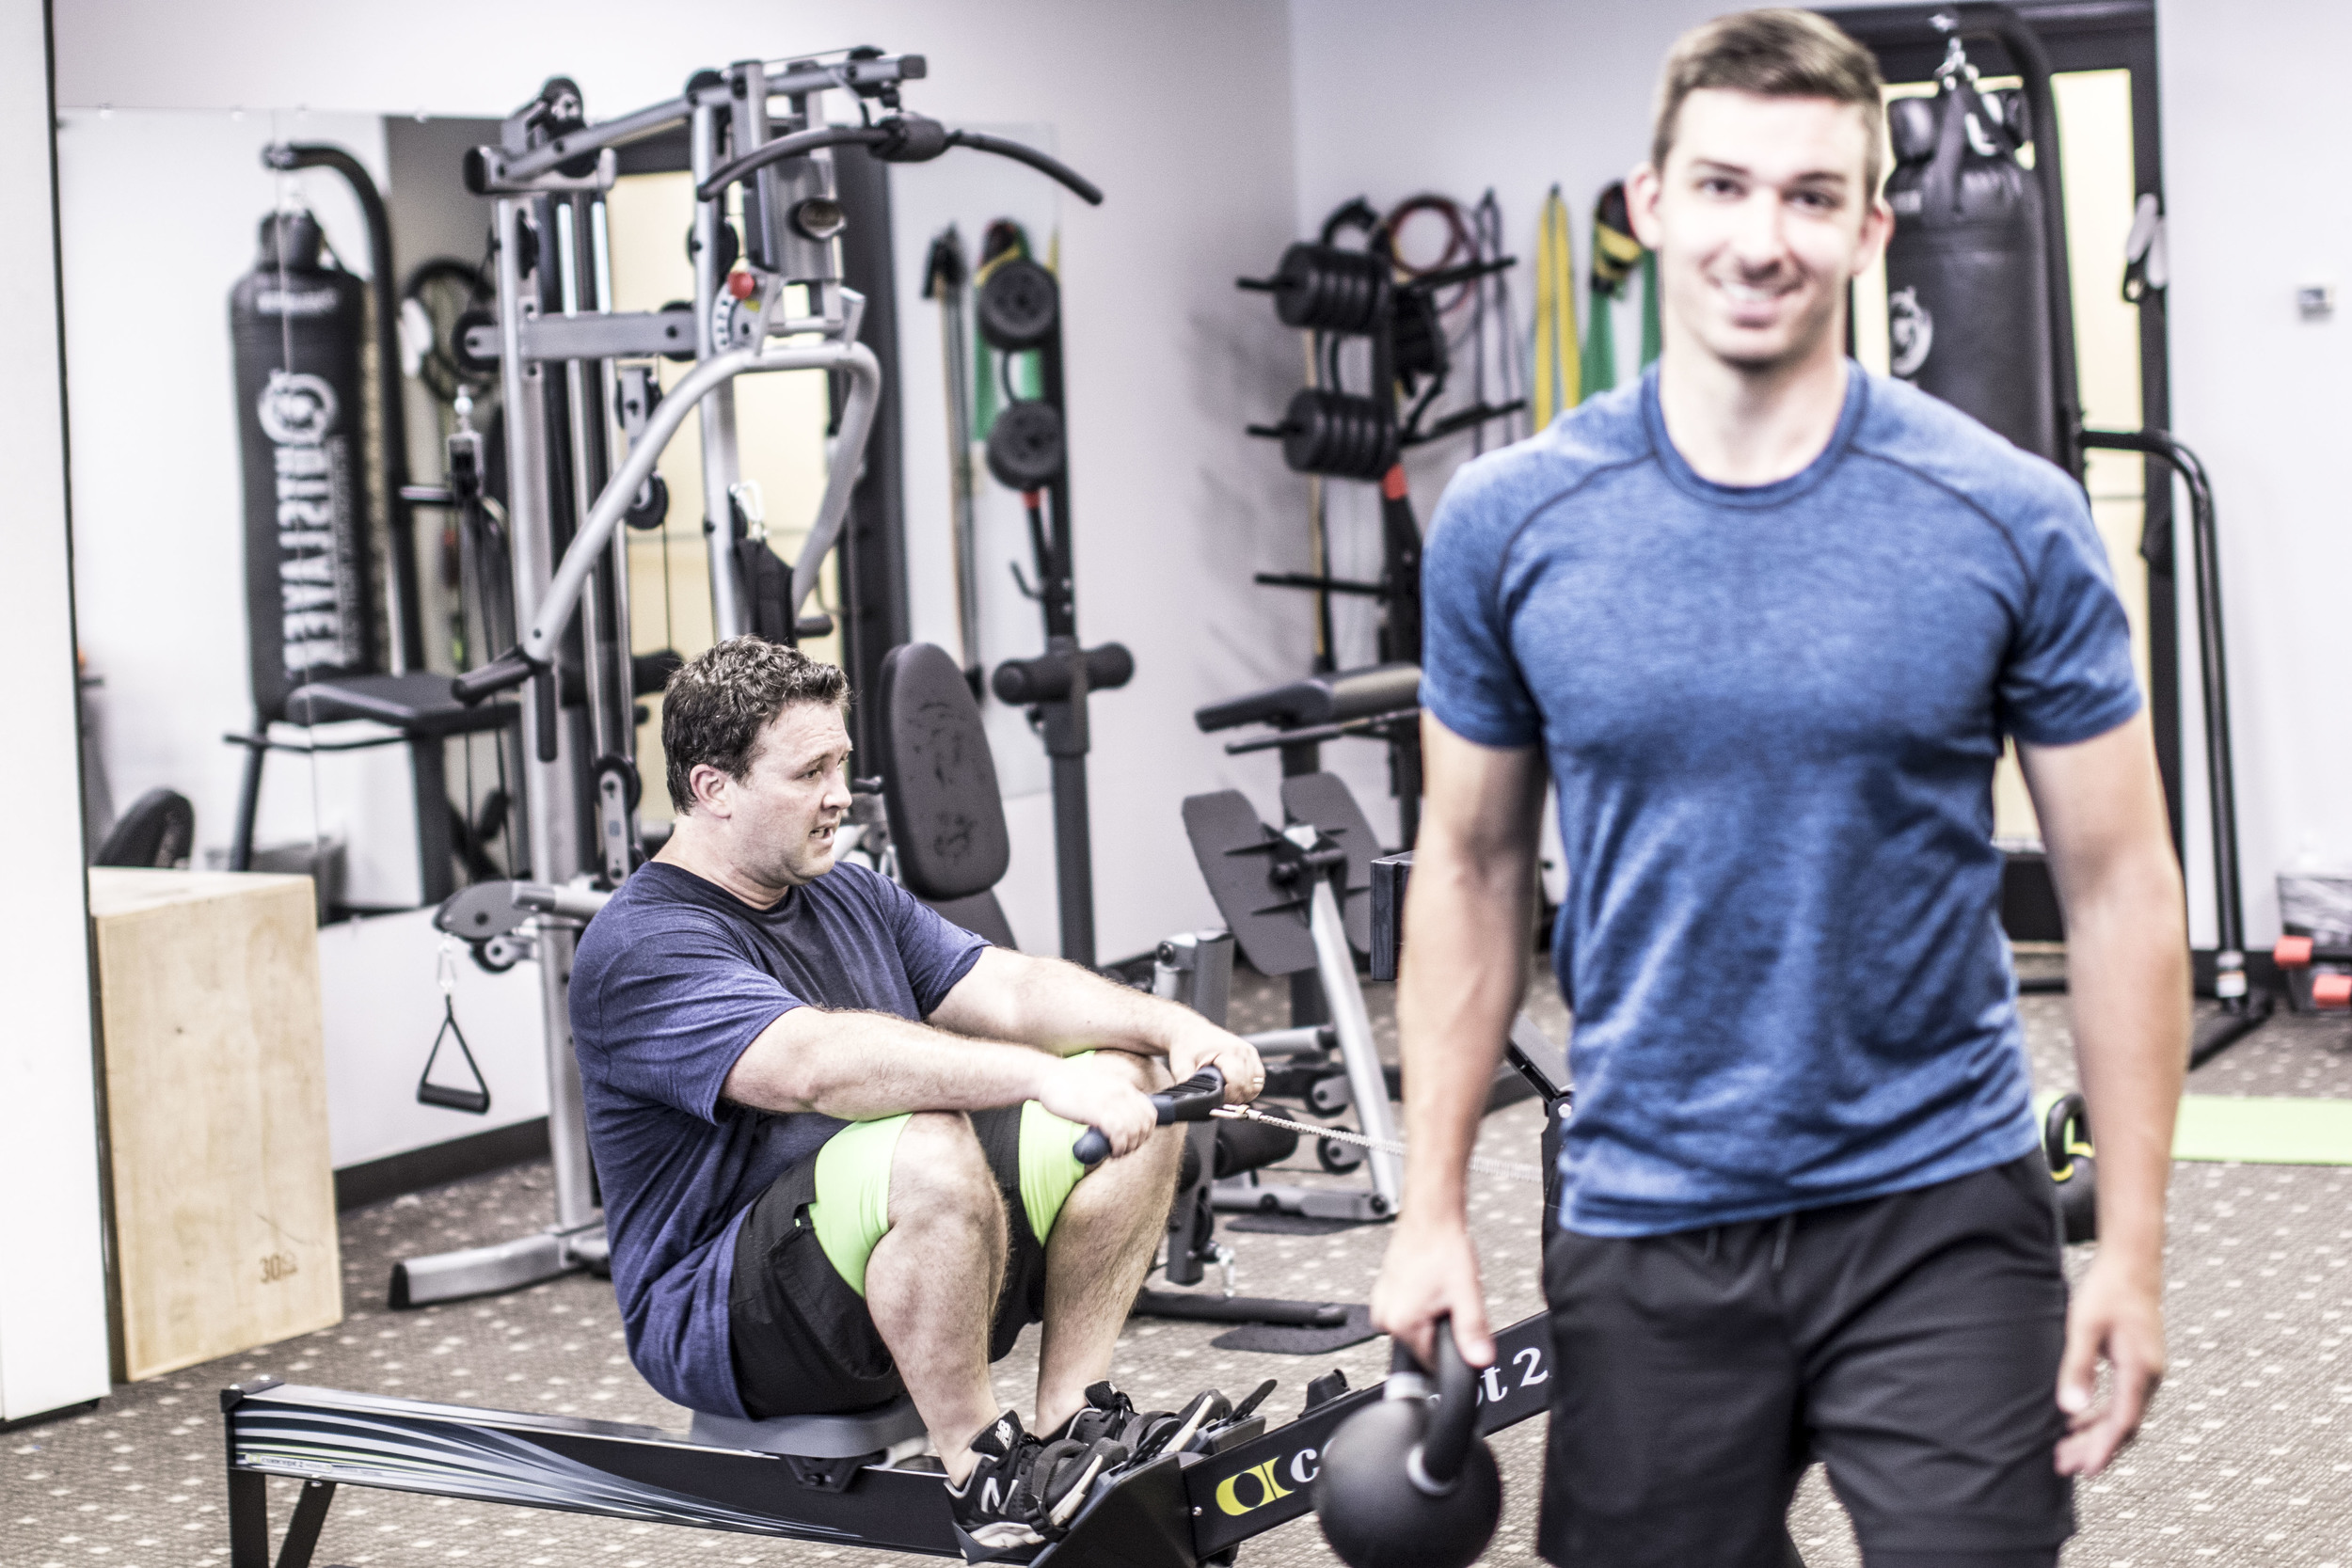 Flex5-Fitness-Wellness-Studio-Brian-Basham-Shrinking-The-Bash-Fox46-Charlotte-rower.jpg